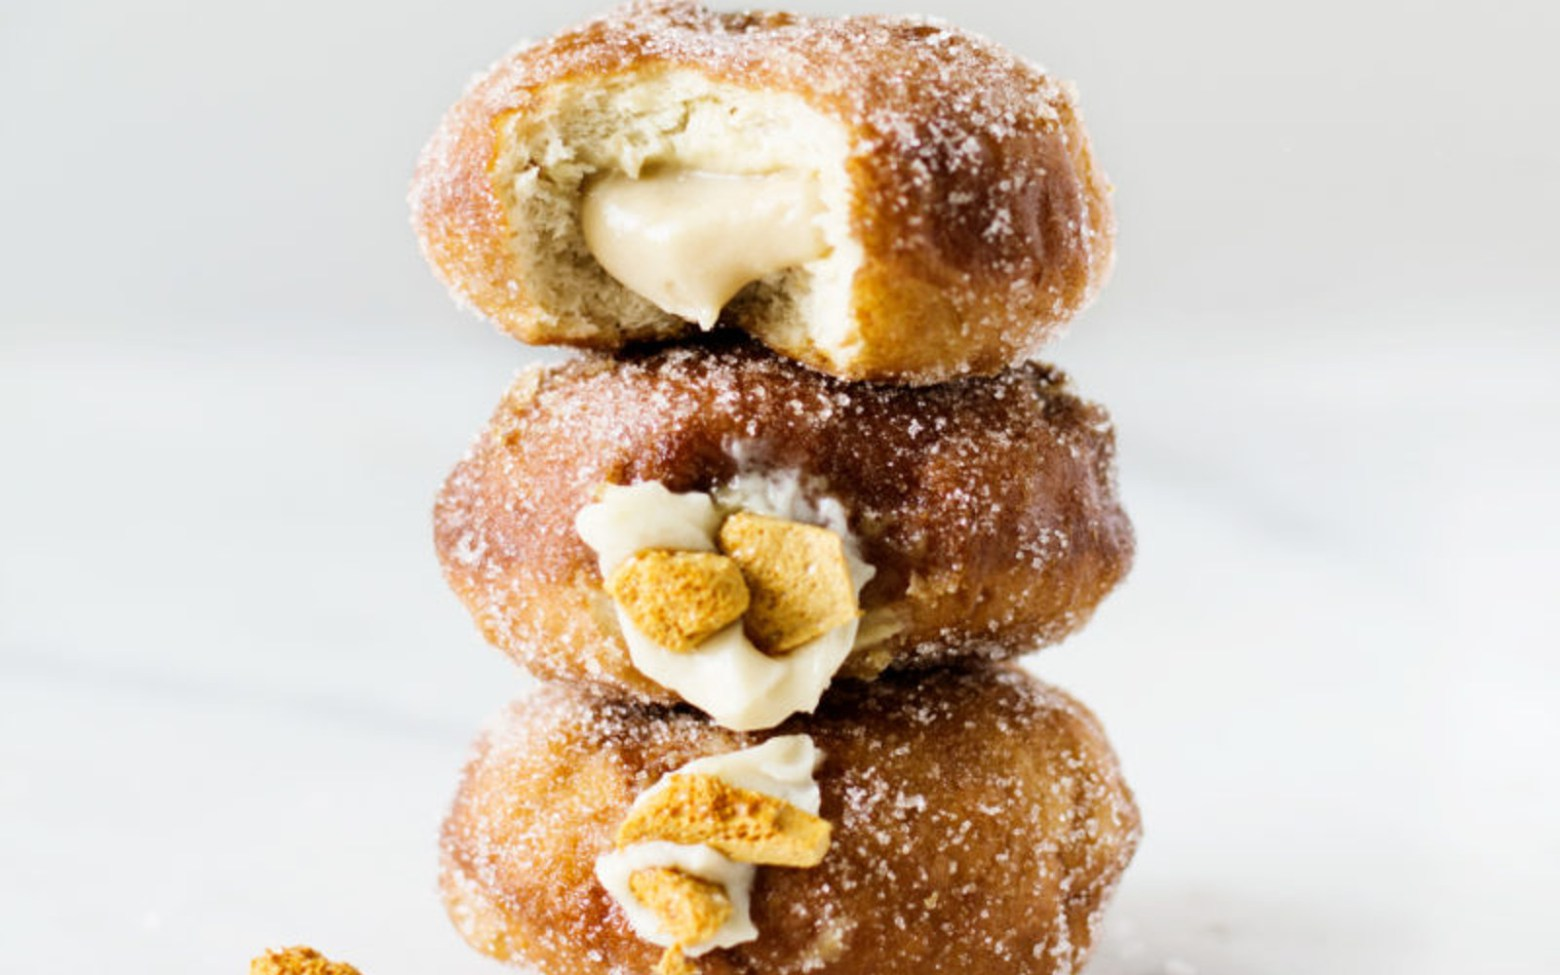 Vegan Honeycomb Doughnuts With Filling